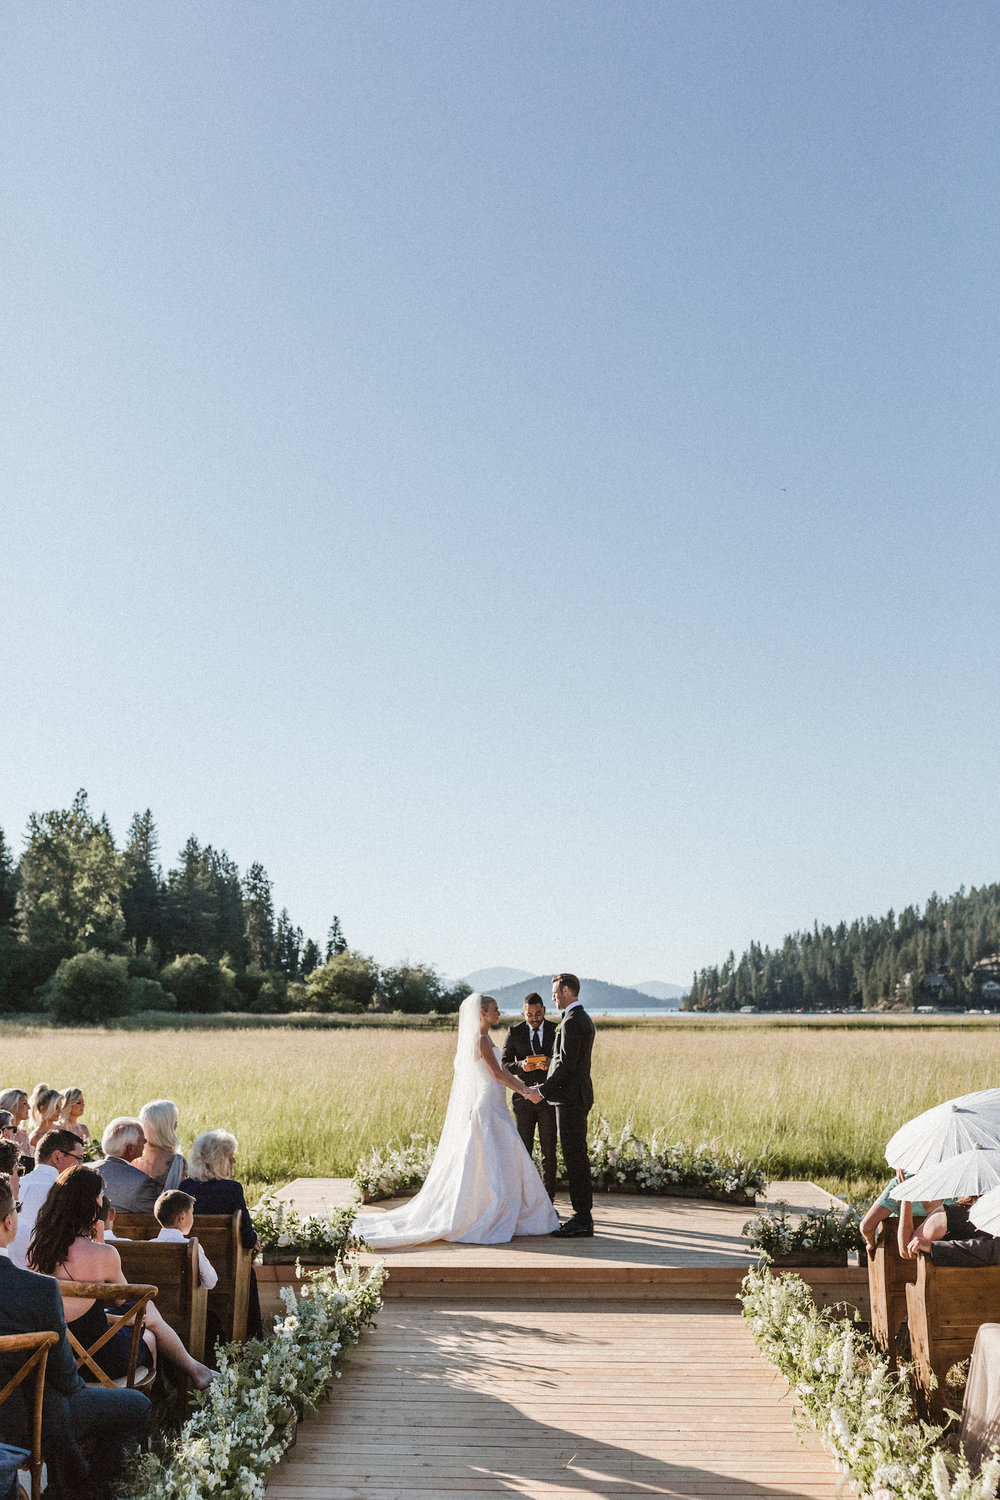 Julianne Hough and Brooks Laich Wedding - Wild Bloom Floral - Sarah Falugo Photography - Simply Troy Event Design 58.jpeg